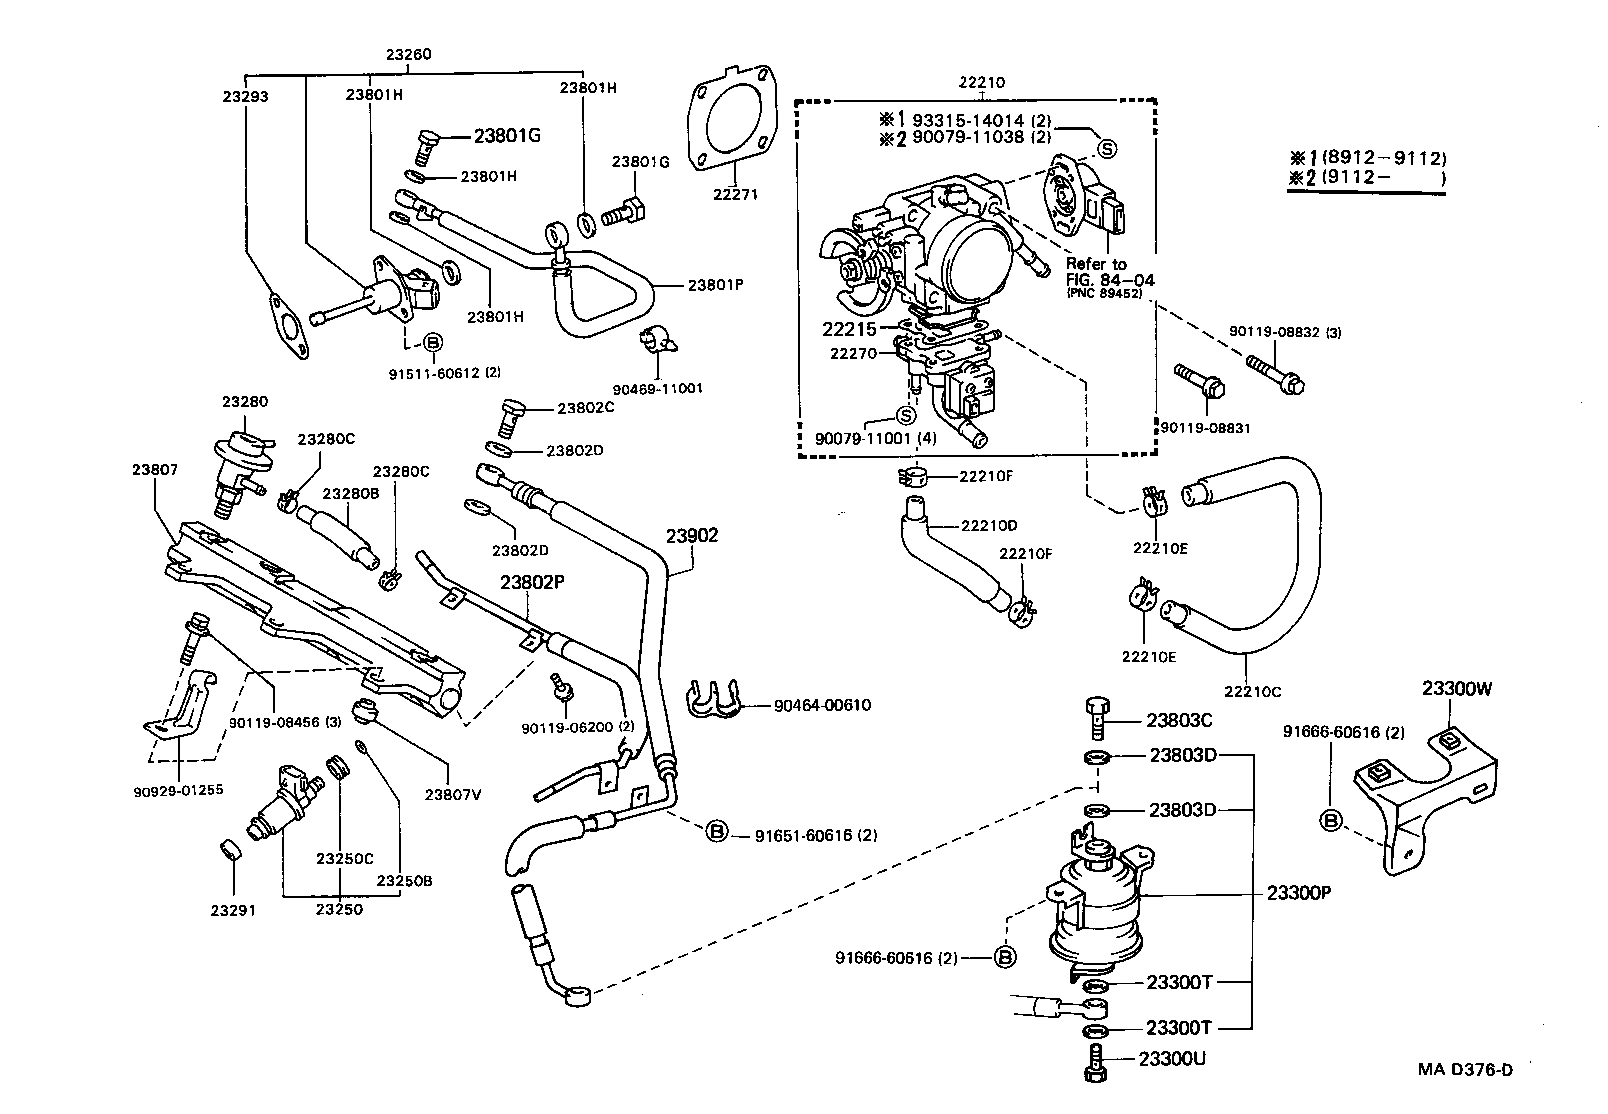 Fuel Injection System Illust No 1 Of 2 3sge